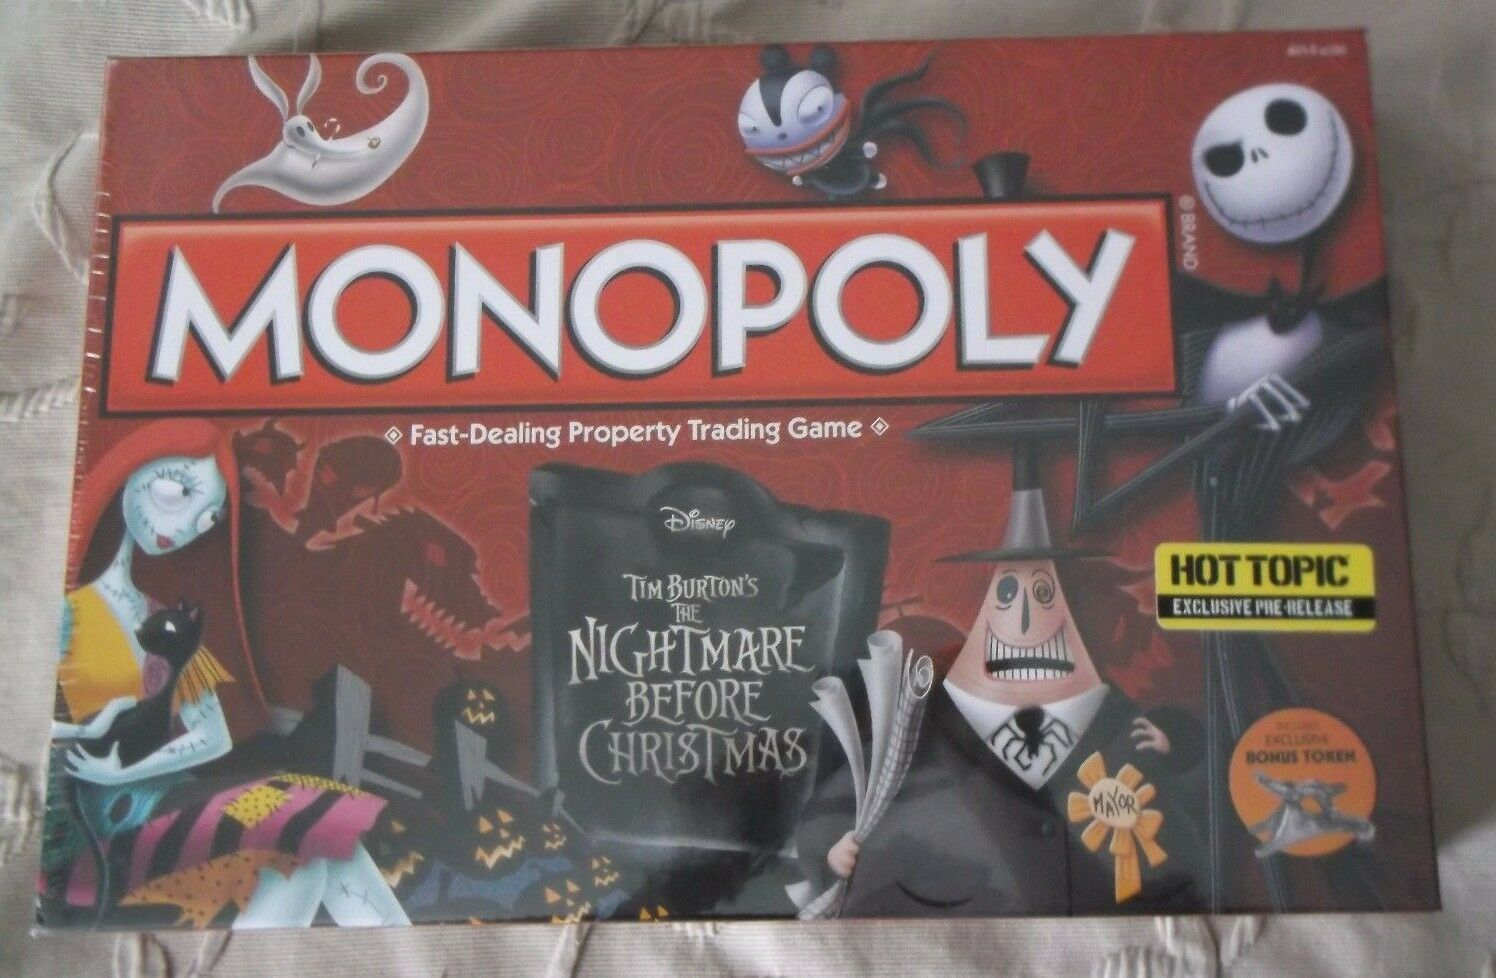 Monopoly The Nightmare Before Christmas Board Game Hot Topic Pre Exclusive NIB